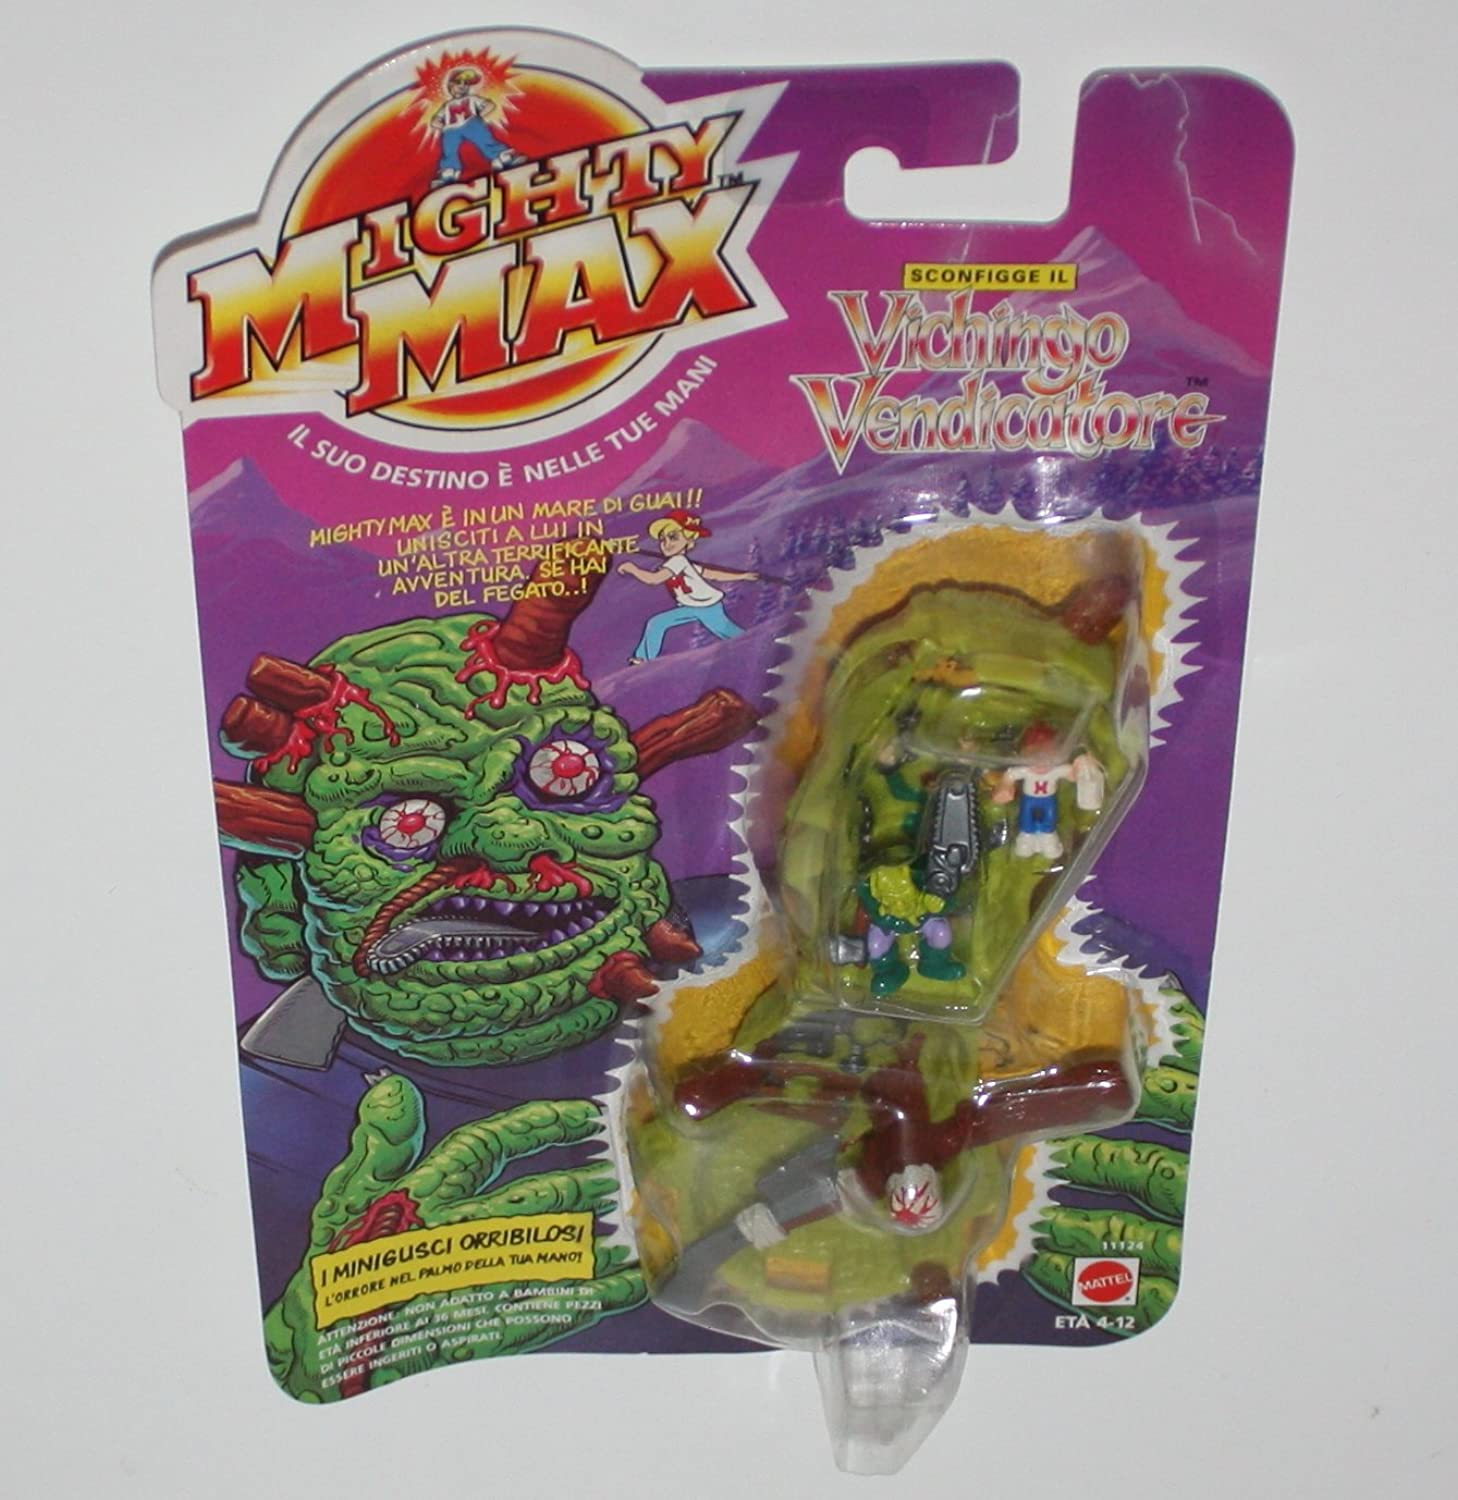 MIGHTY MAX AXMAN blueEBIRD PLAY SET NEW SEALED IN UK